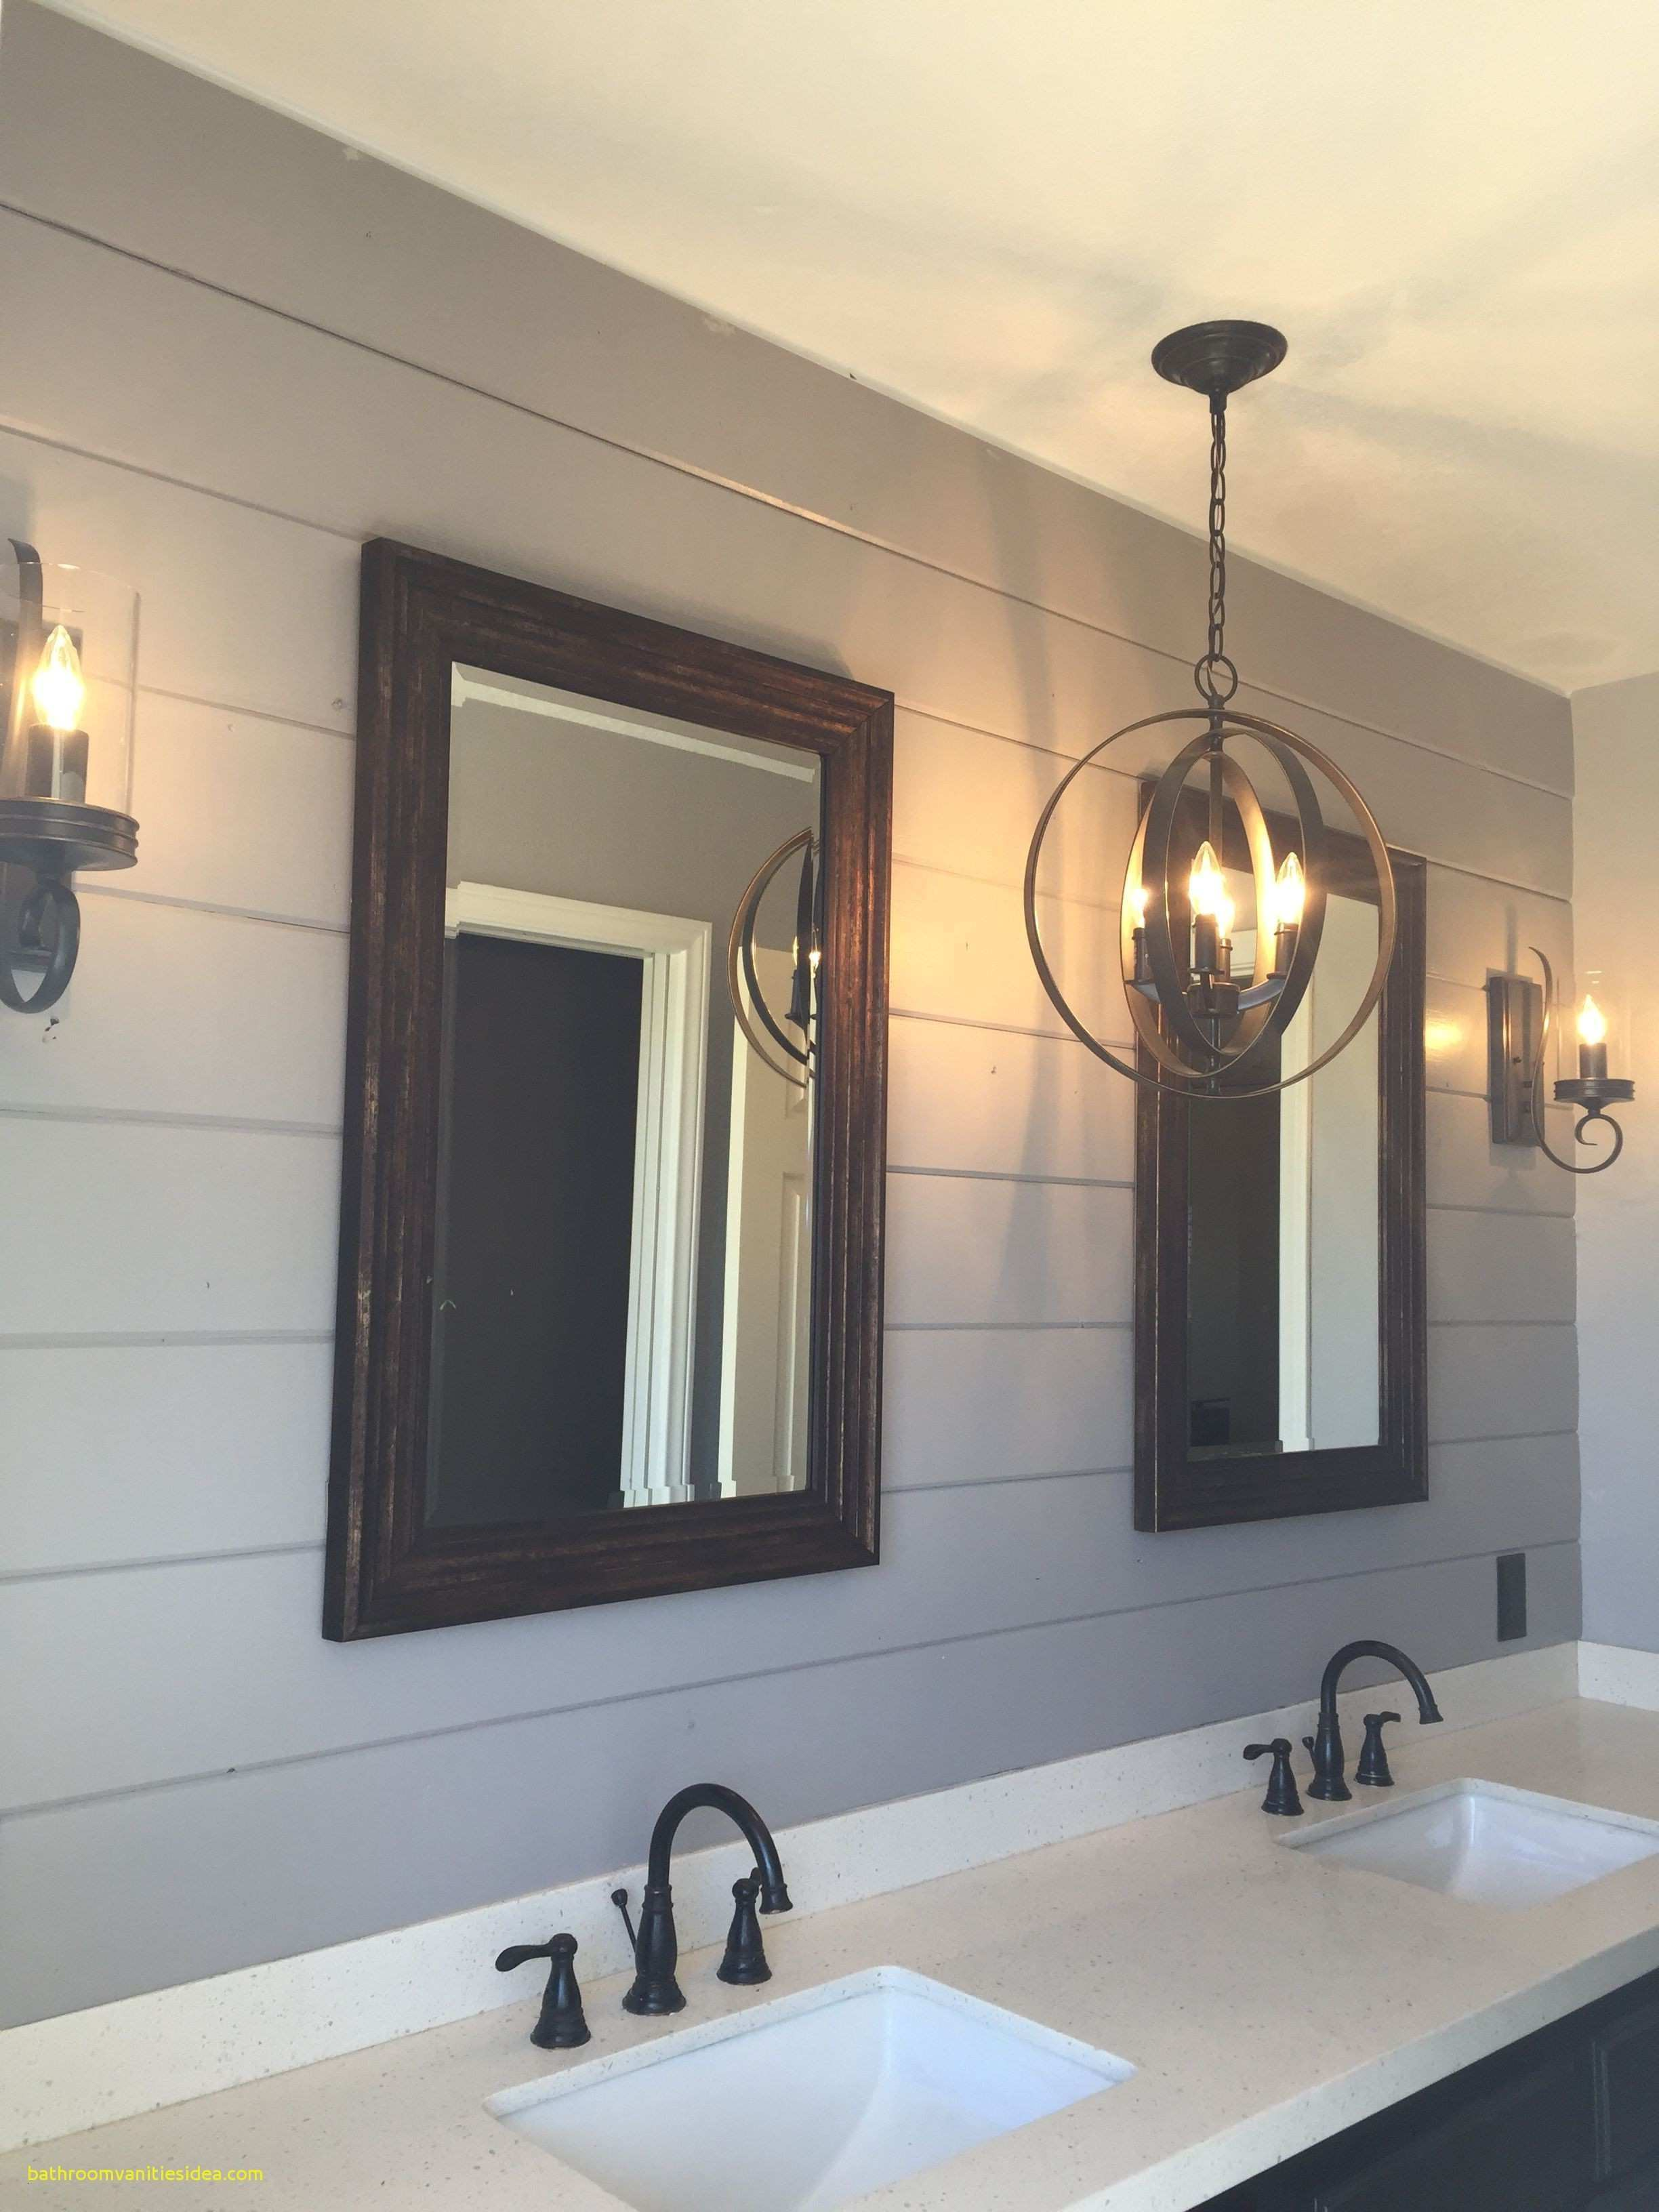 Marvellous Art Deco Bathroom Light terranovaenergyltd